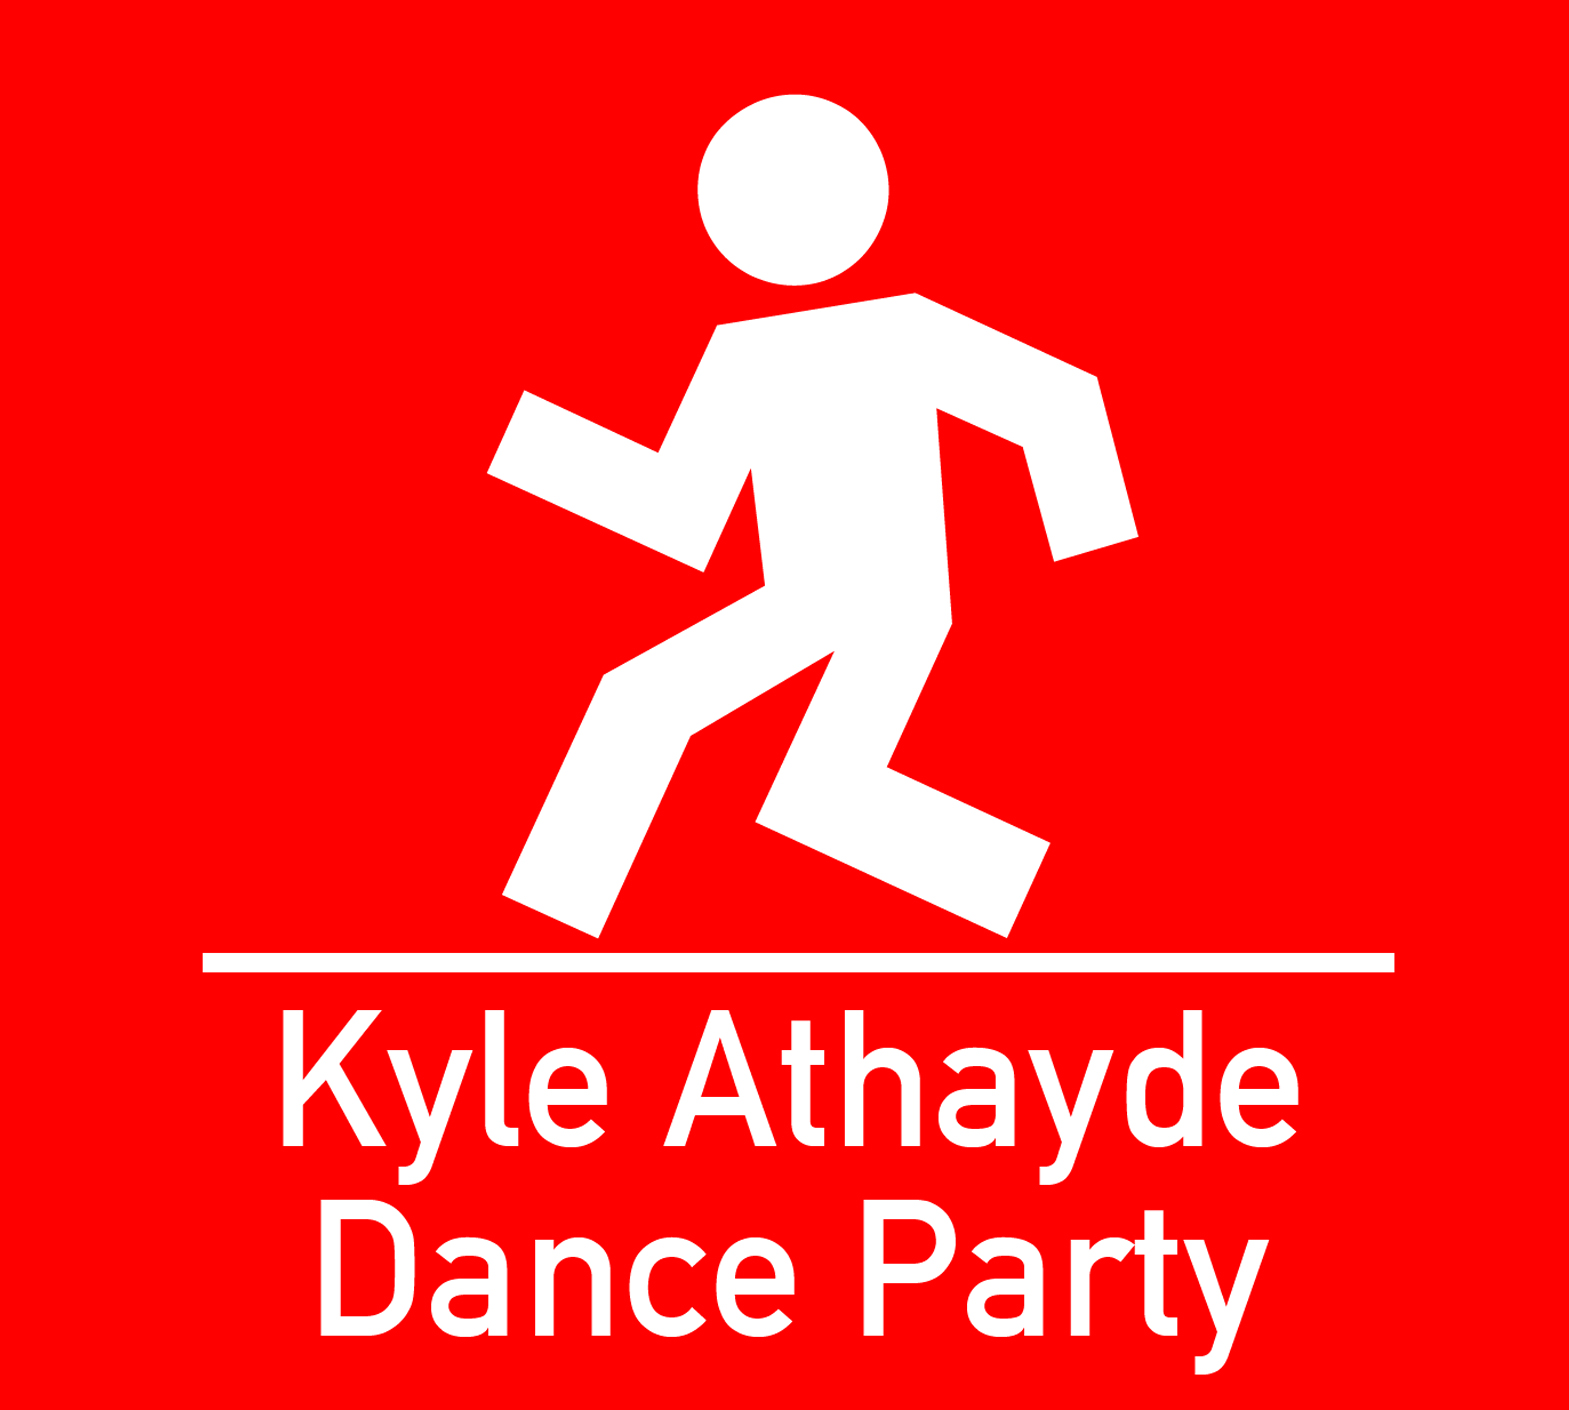 Kyle Athayde Dance Party  (2017) Kyle Athayde Dance Party   CD Baby